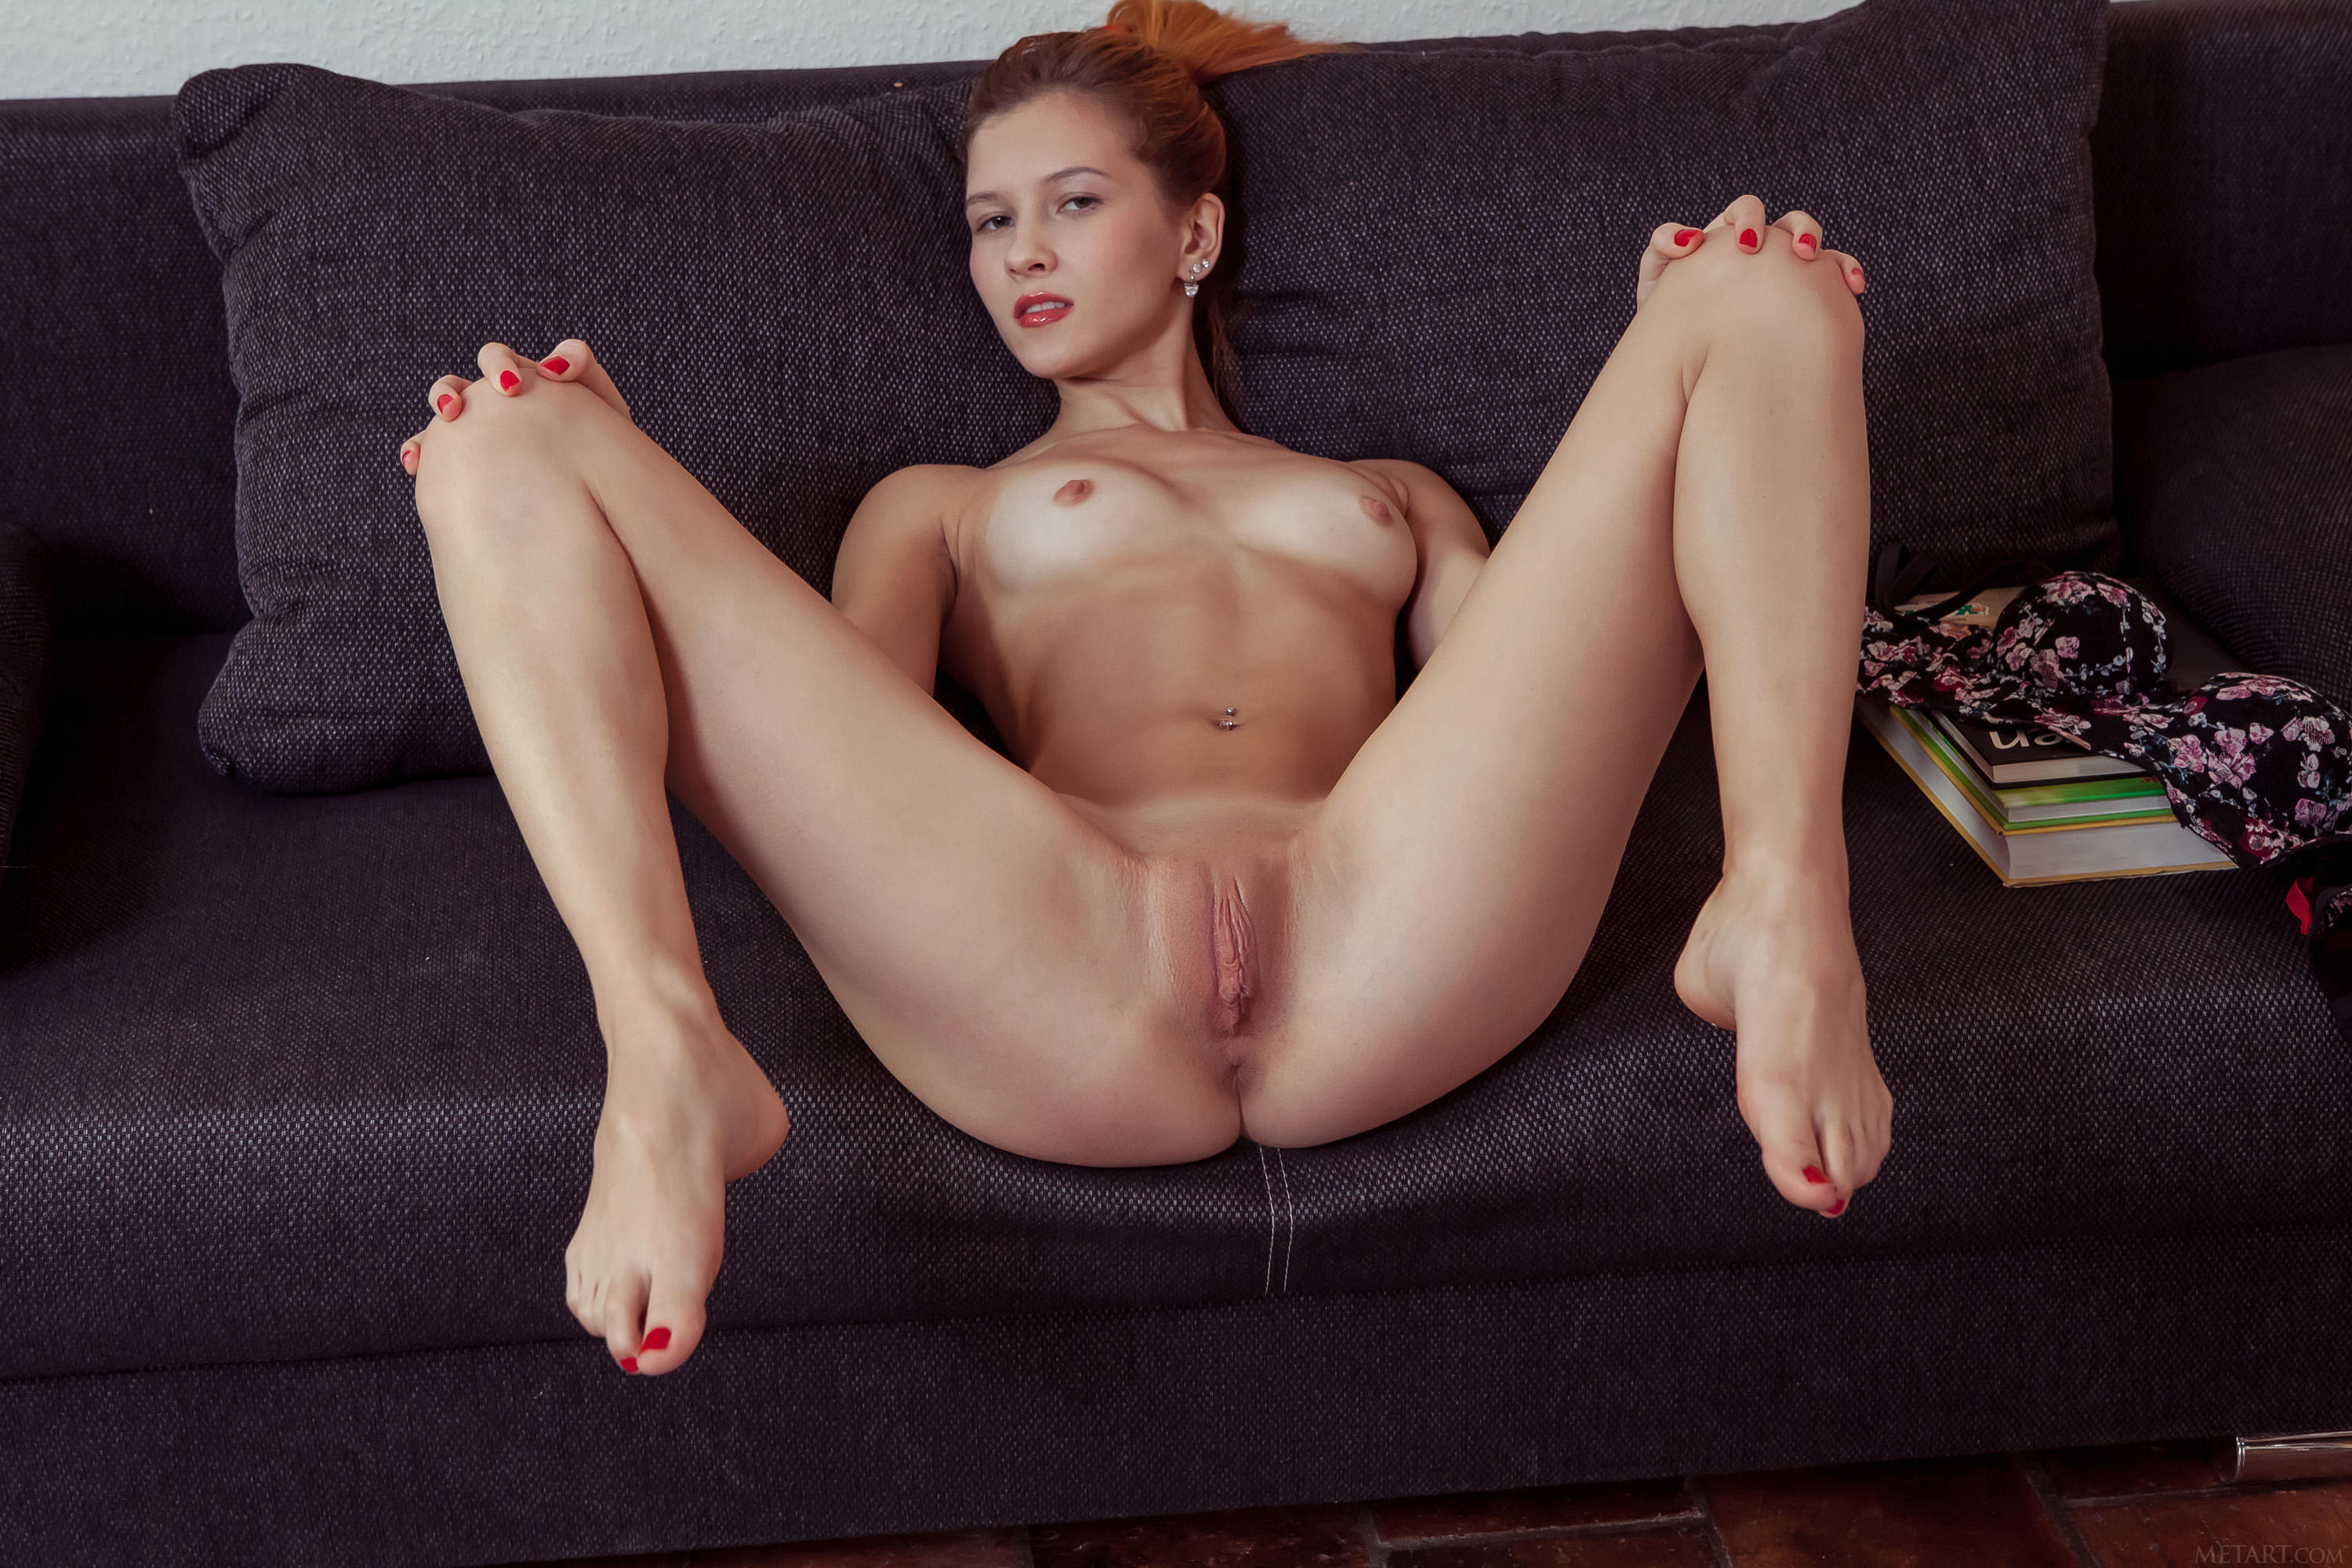 Naked Red Hair Female With Great Legs